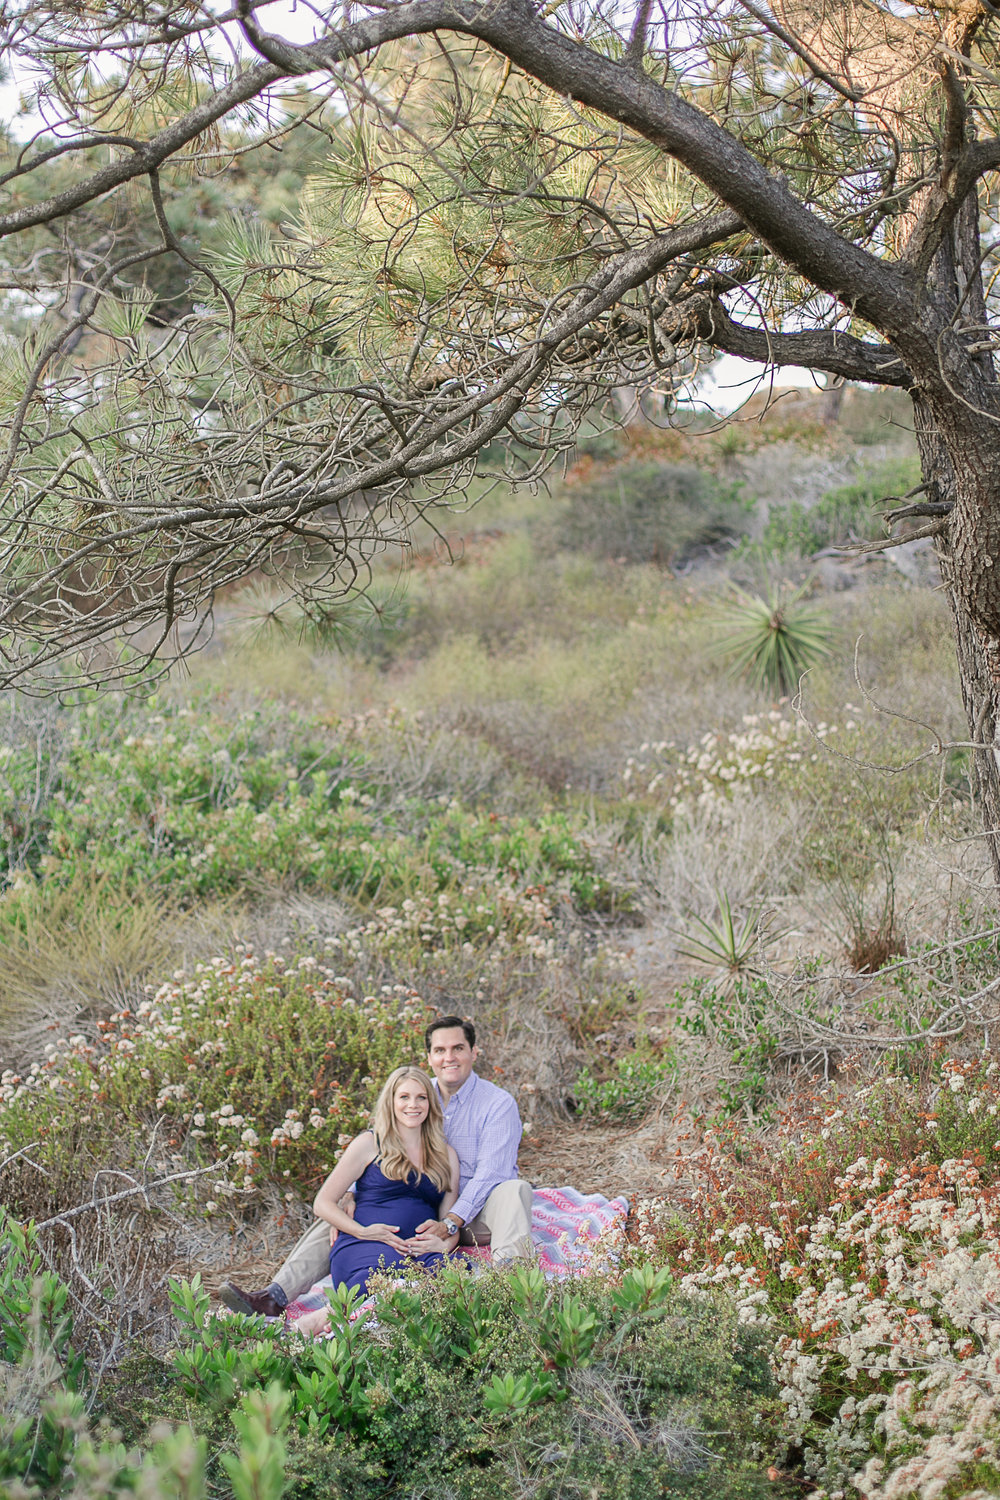 Shane_&_Shayna_Torrey_Pines Maternity_Session_2017-14.jpg